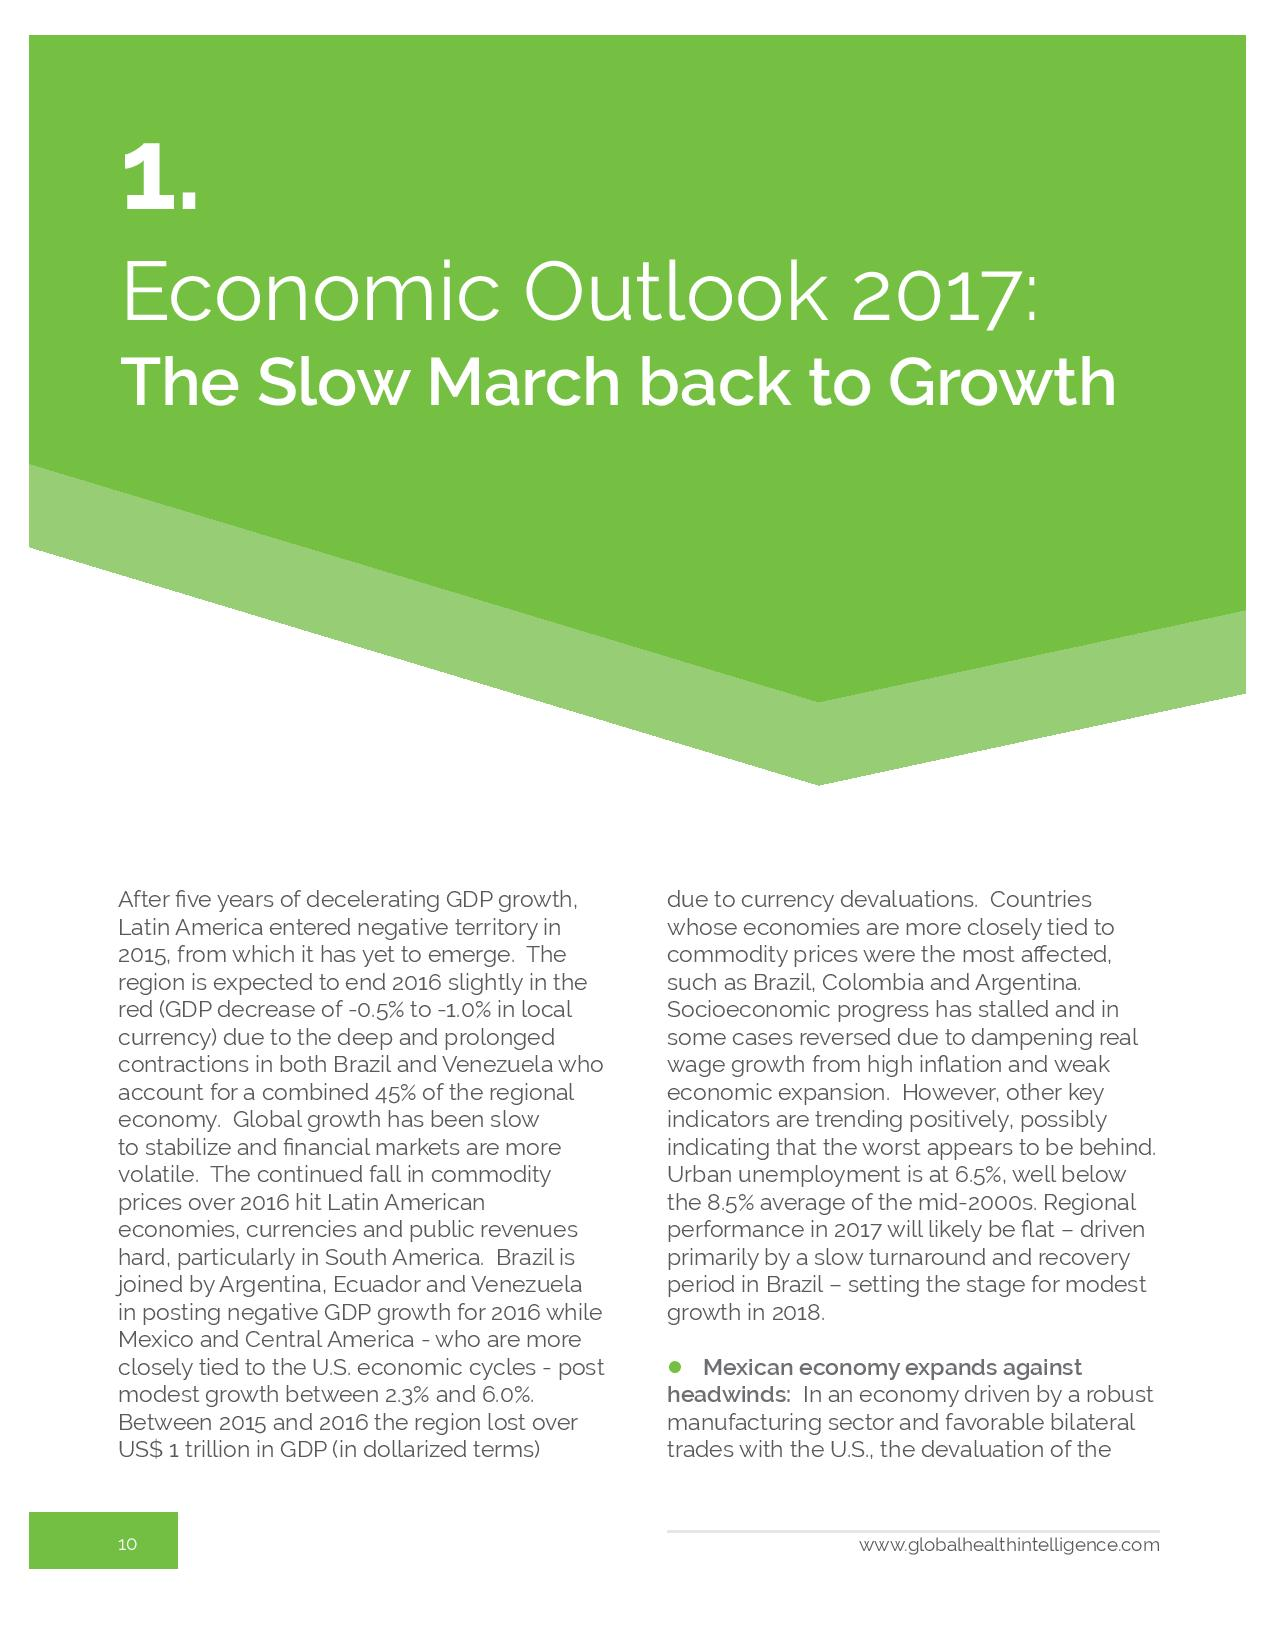 Article 1 - Economic Outlook 2017-page-001